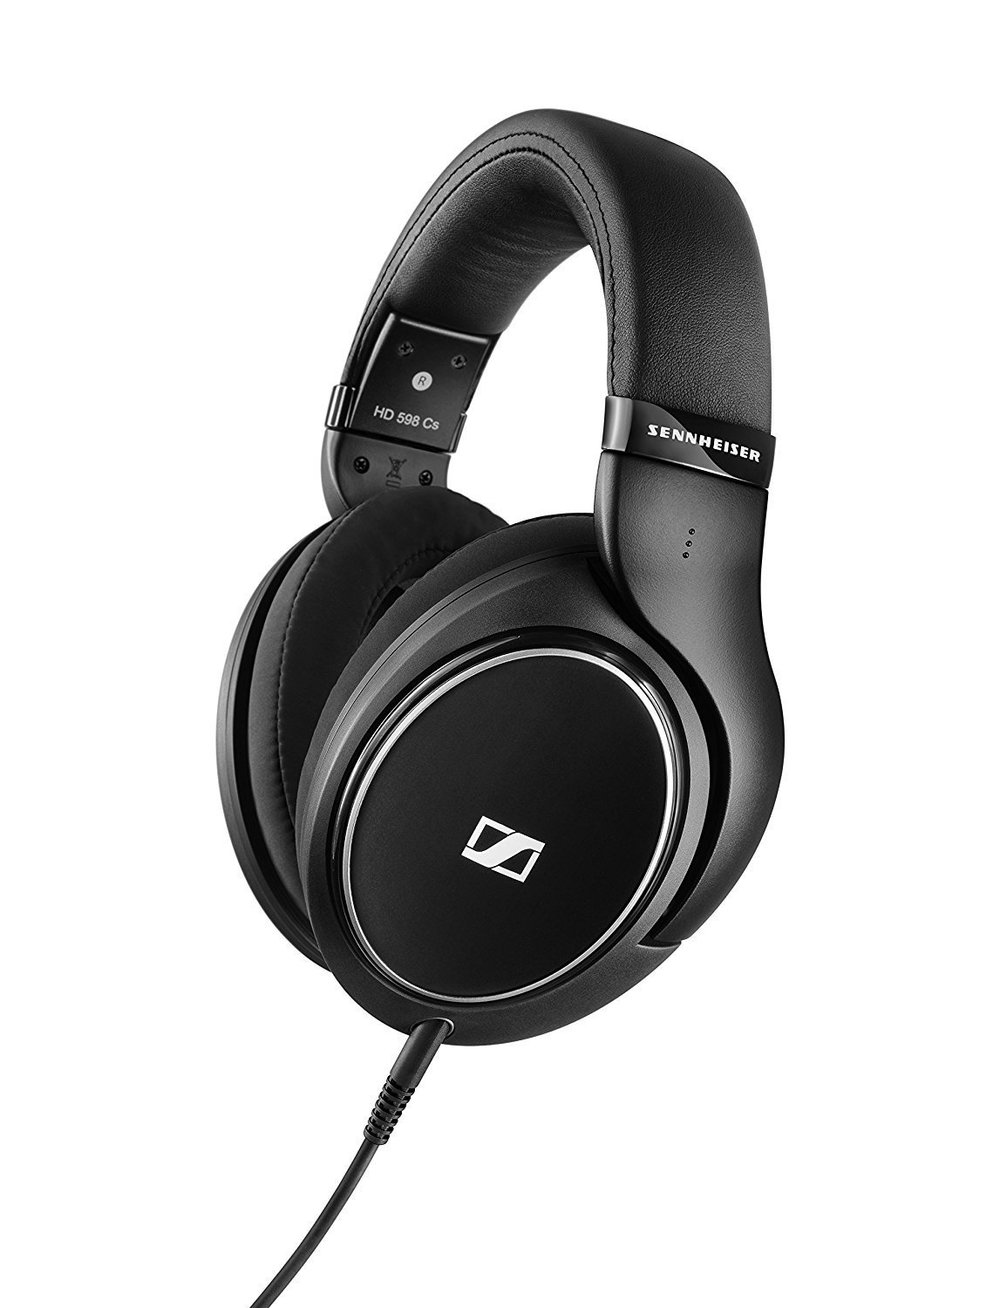 Sennheiser HD 598 Cs Closed Back Headphone.jpg